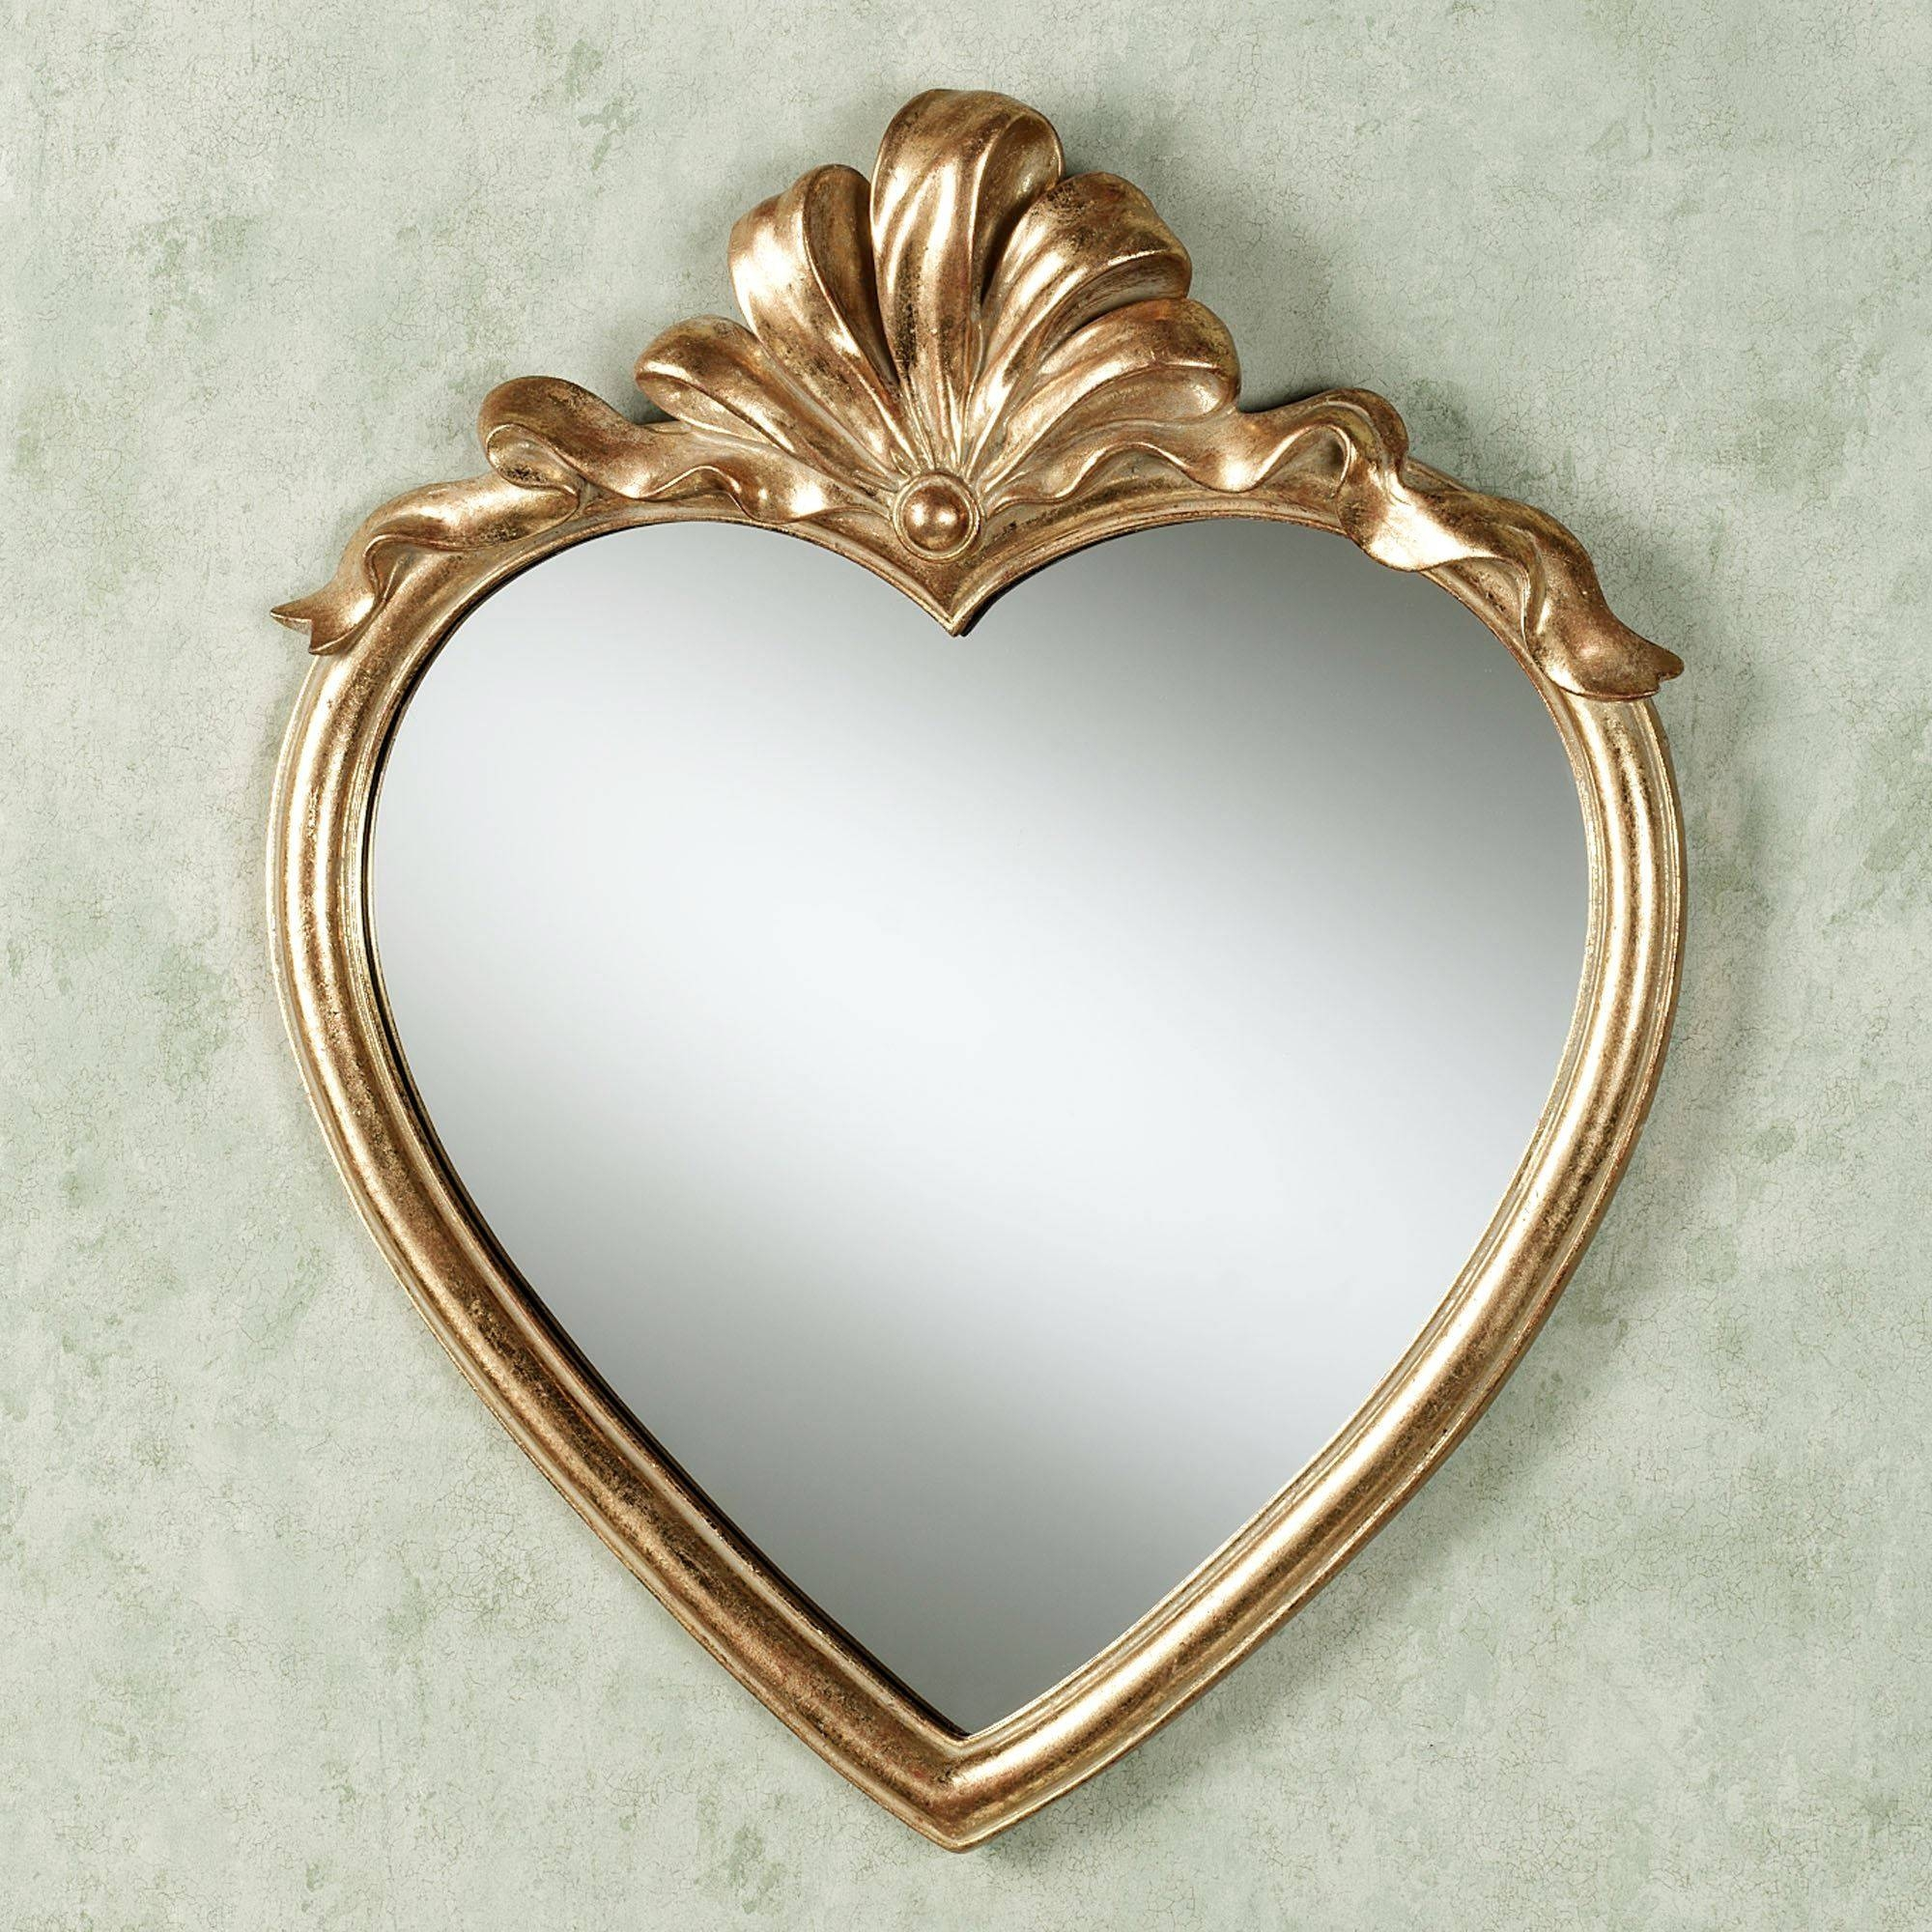 Accent Wall Mirrors intended for Heart Wall Mirrors (Image 2 of 25)